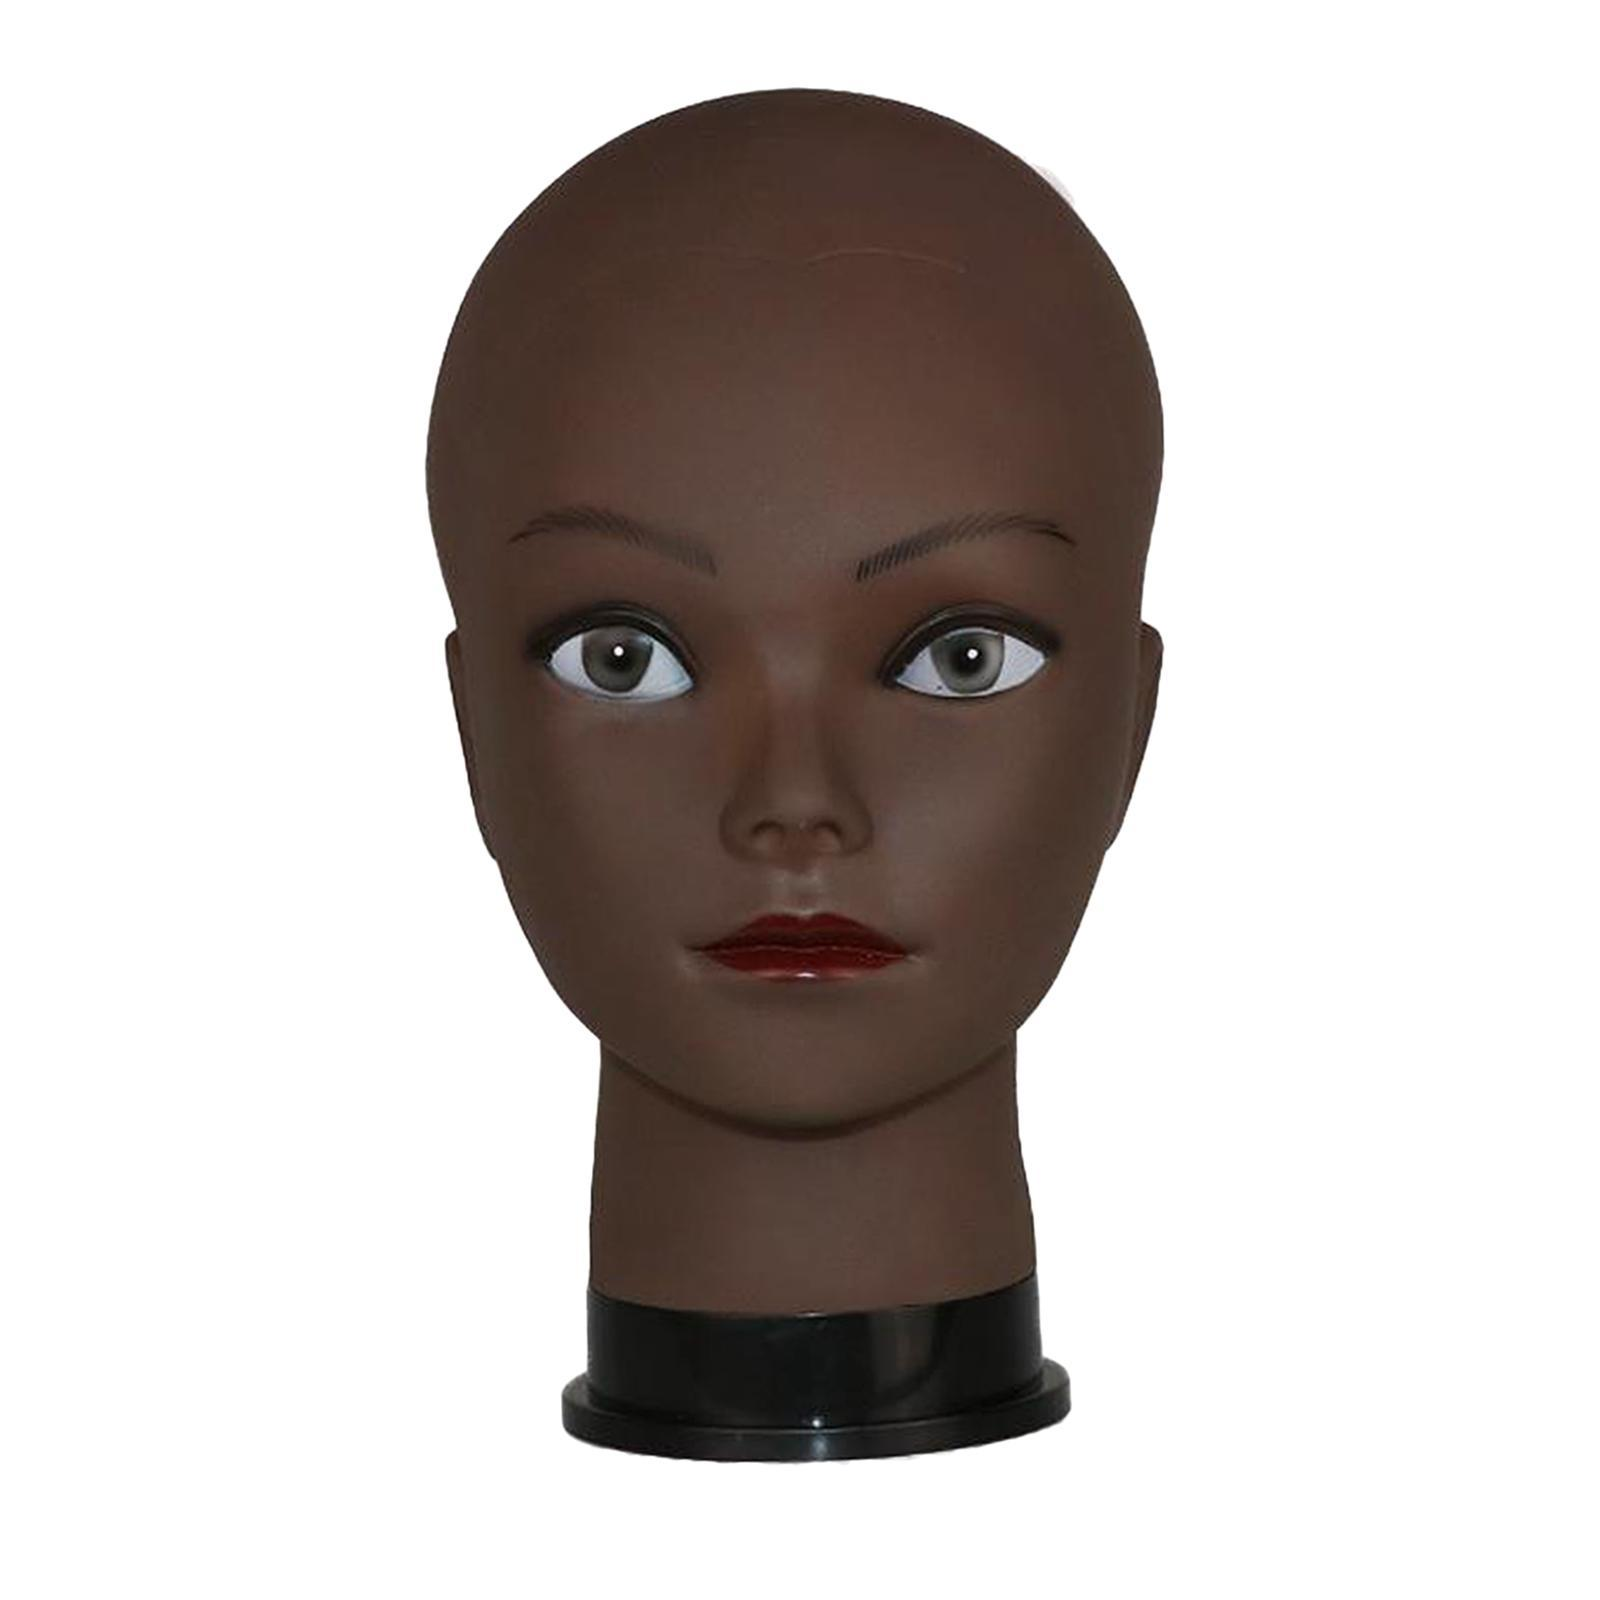 thumbnail 9 - Male-female bald mannequin head wigs hats glasses scarves jewelry